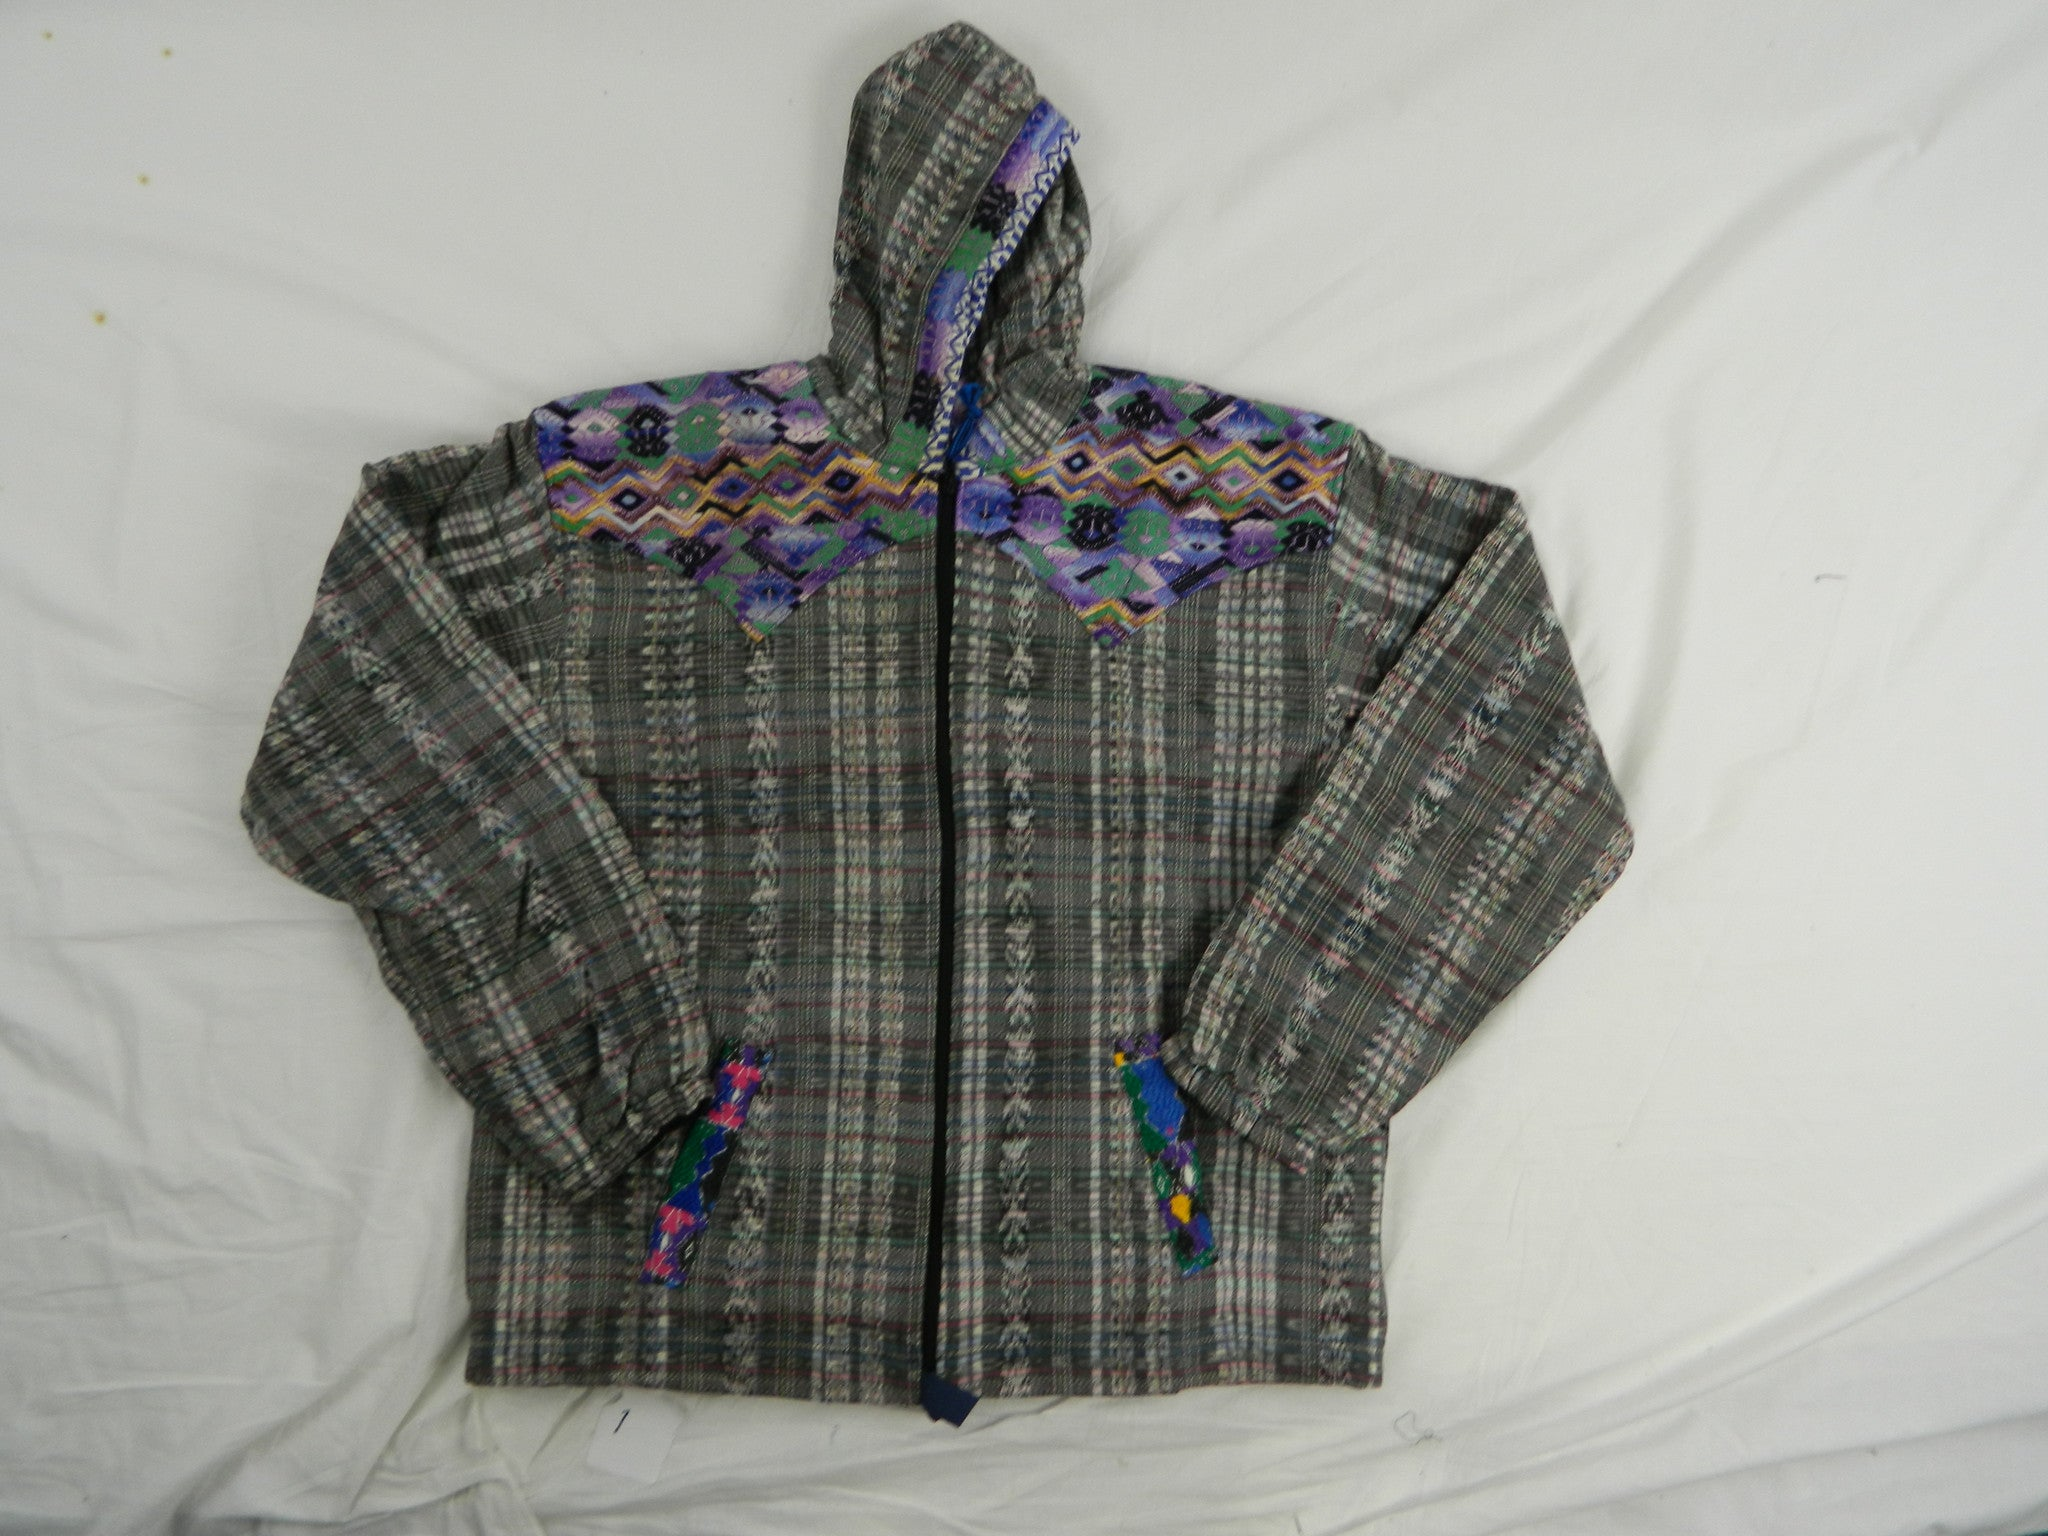 Fleece lined hand woven hooded jacket with hand brocaded trim